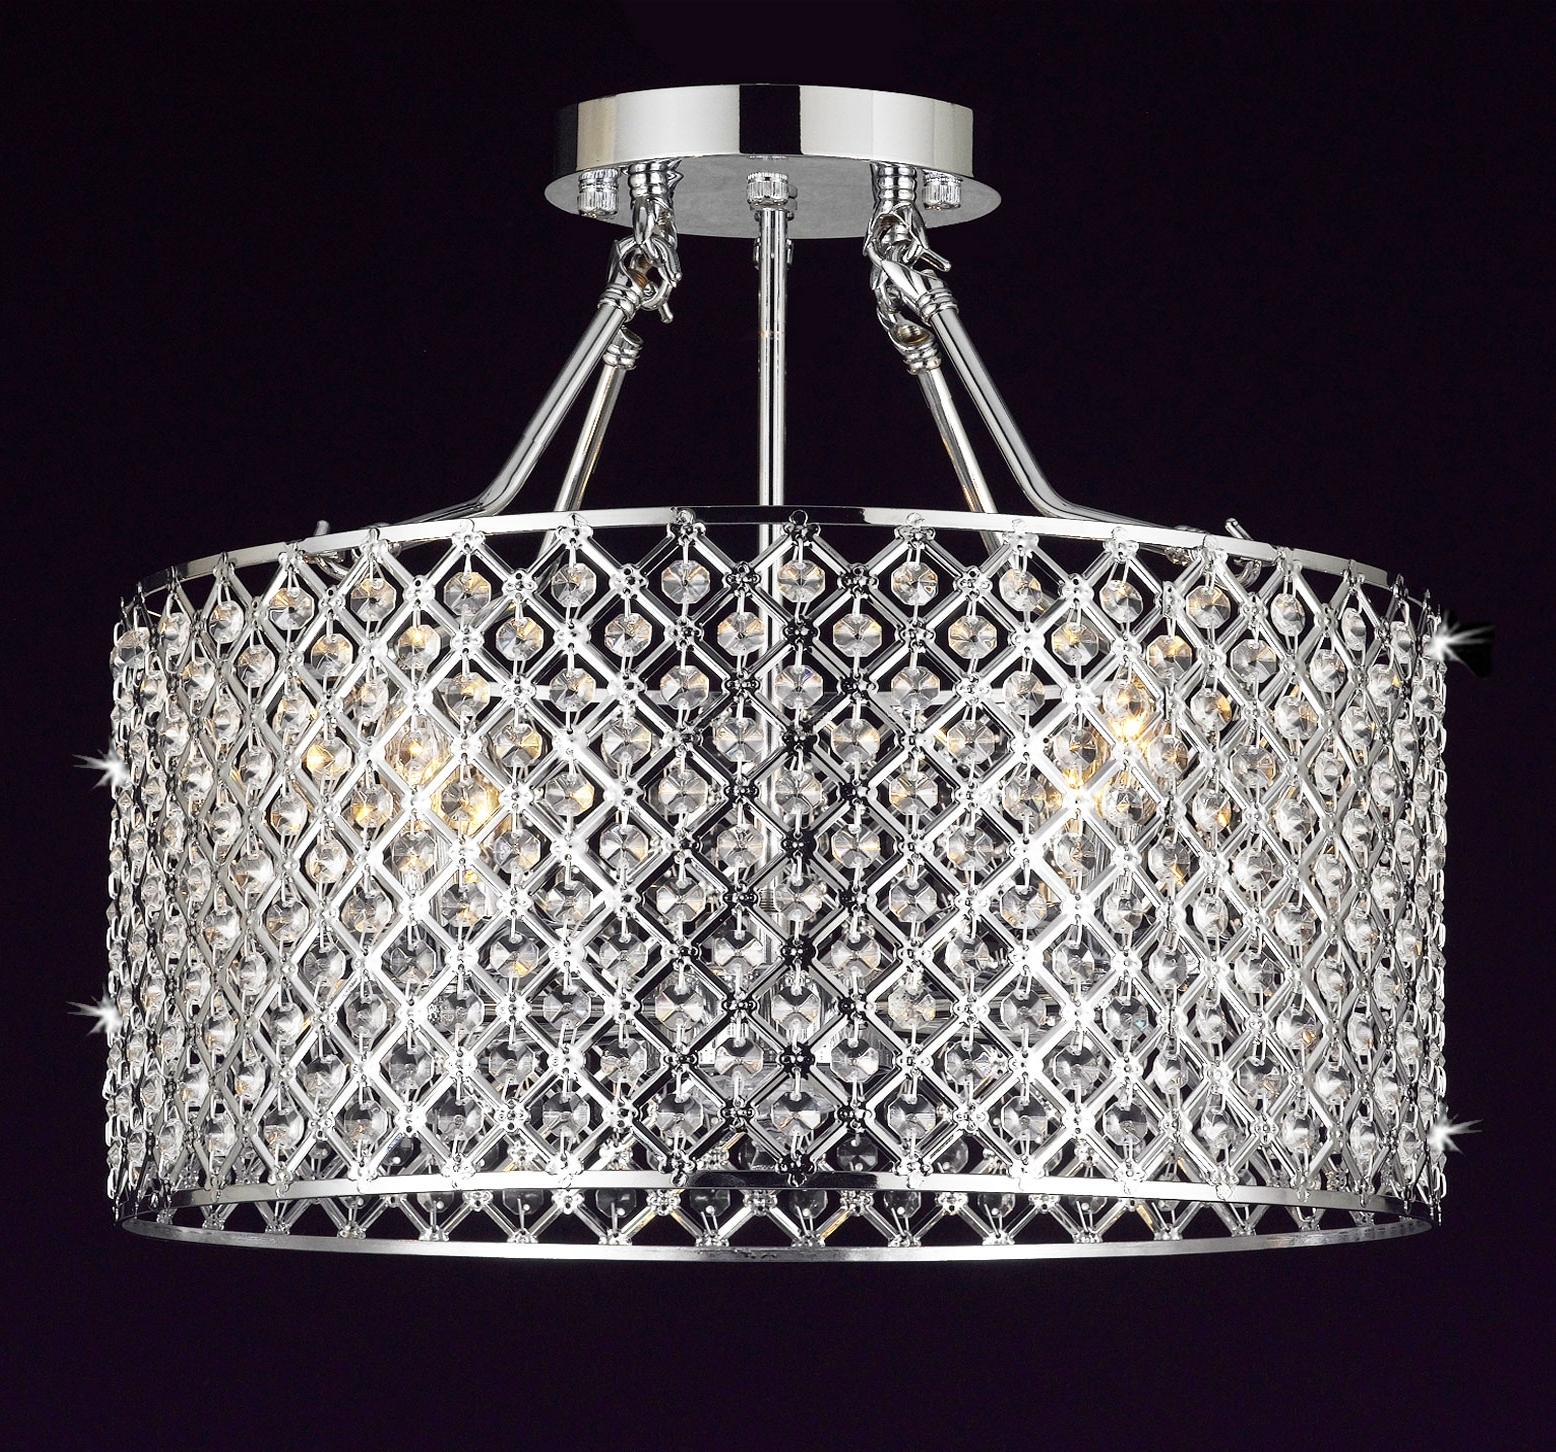 Best And Newest 4 Light Chrome Crystal Chandeliers Regarding G7 B12/white/2130/4 Gallery Chandeliers Flushmount 4 Light Chrome (View 7 of 15)